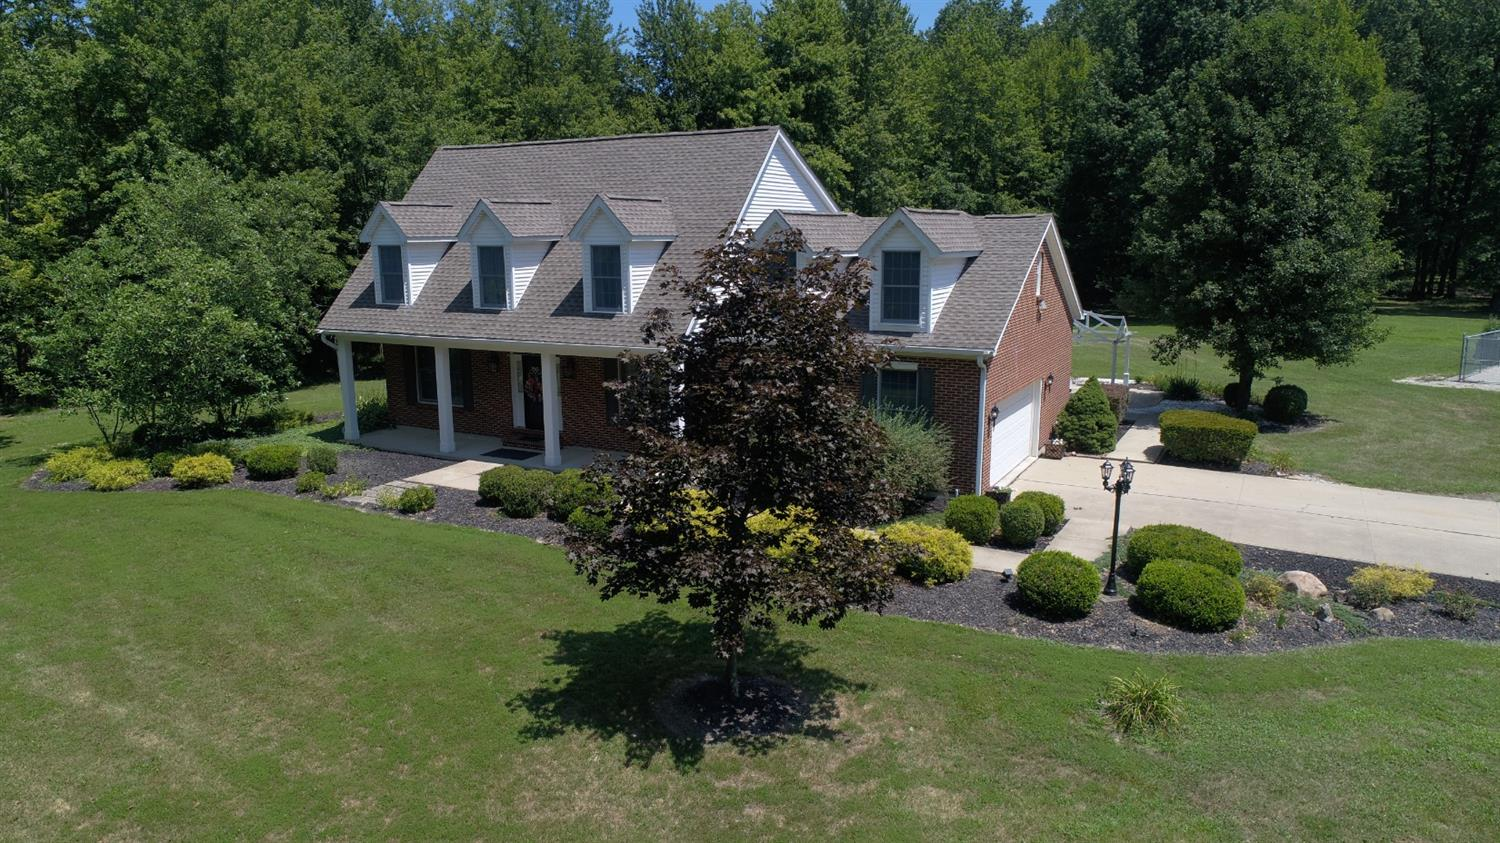 Property for sale at 3592 Bootjack Road, Williamsburg Twp,  Ohio 45176